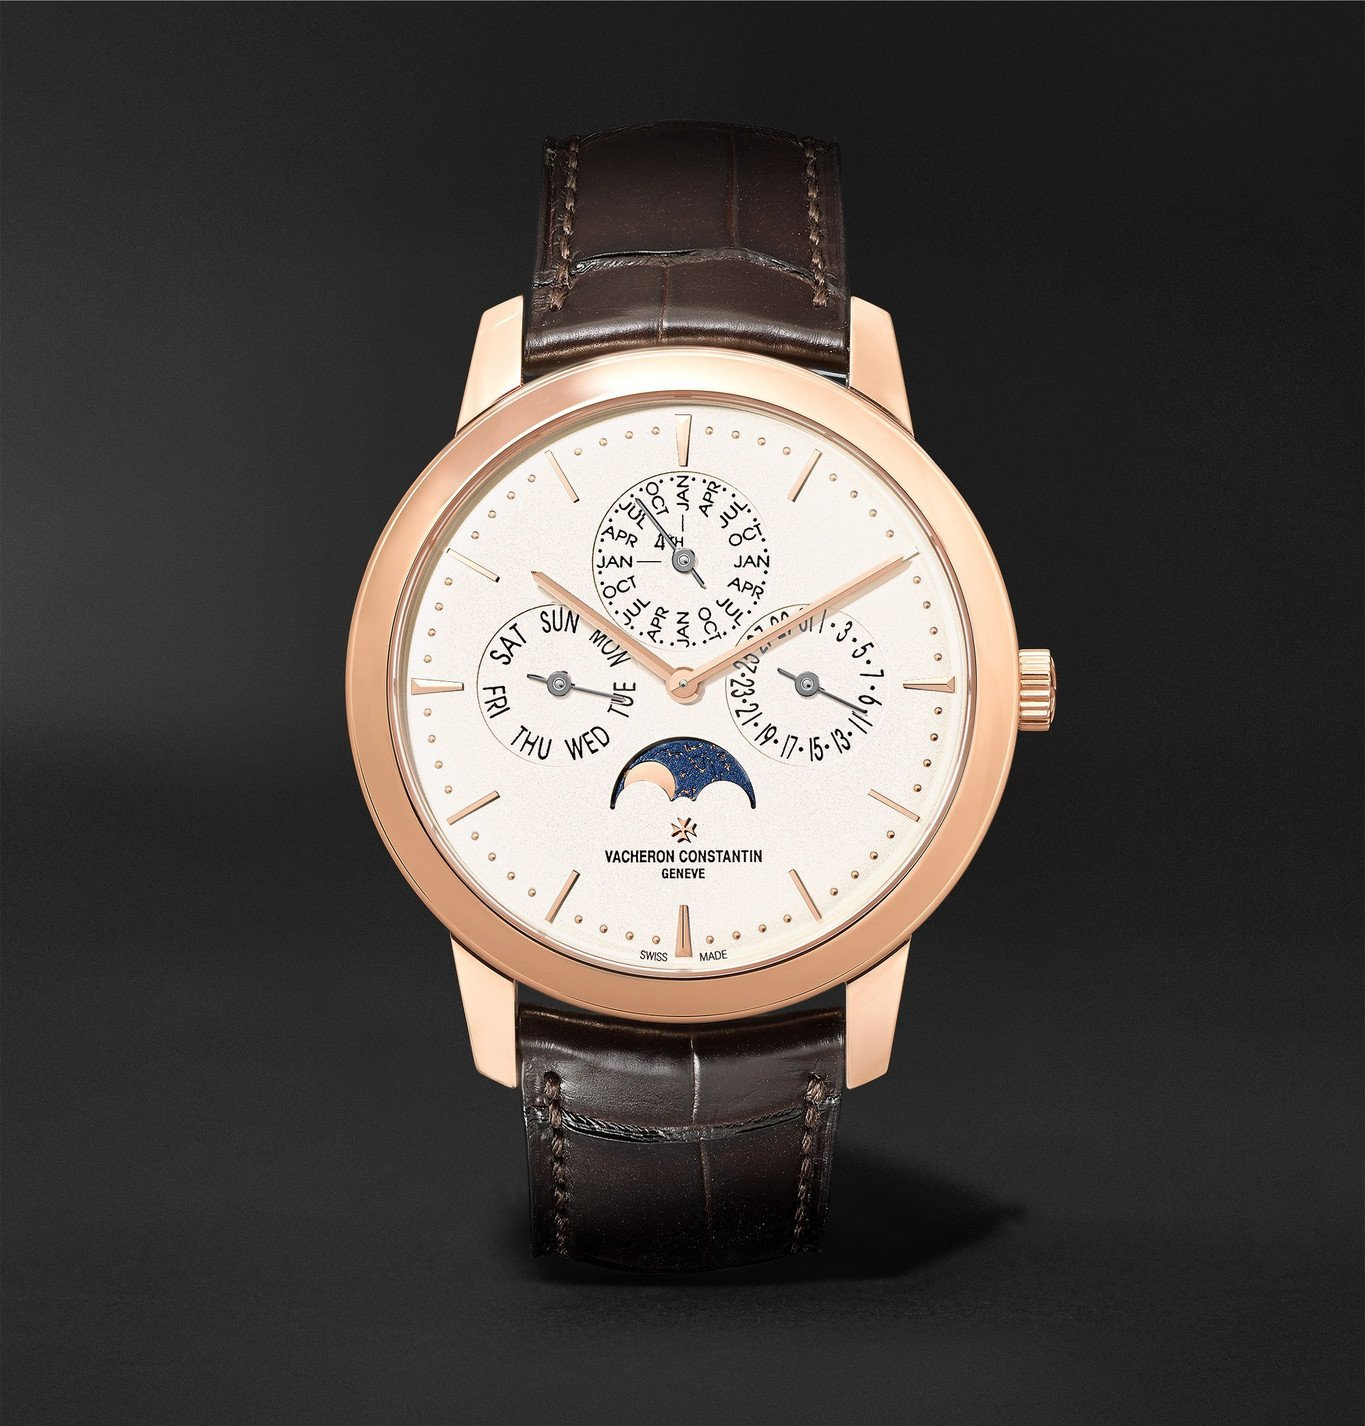 Photo: Vacheron Constantin - Traditionnelle Perpetual Calendar Automatic 41mm 18-Karat Pink Gold and Alligator Watch, Ref. No. 43175/000R-9687 - Blue